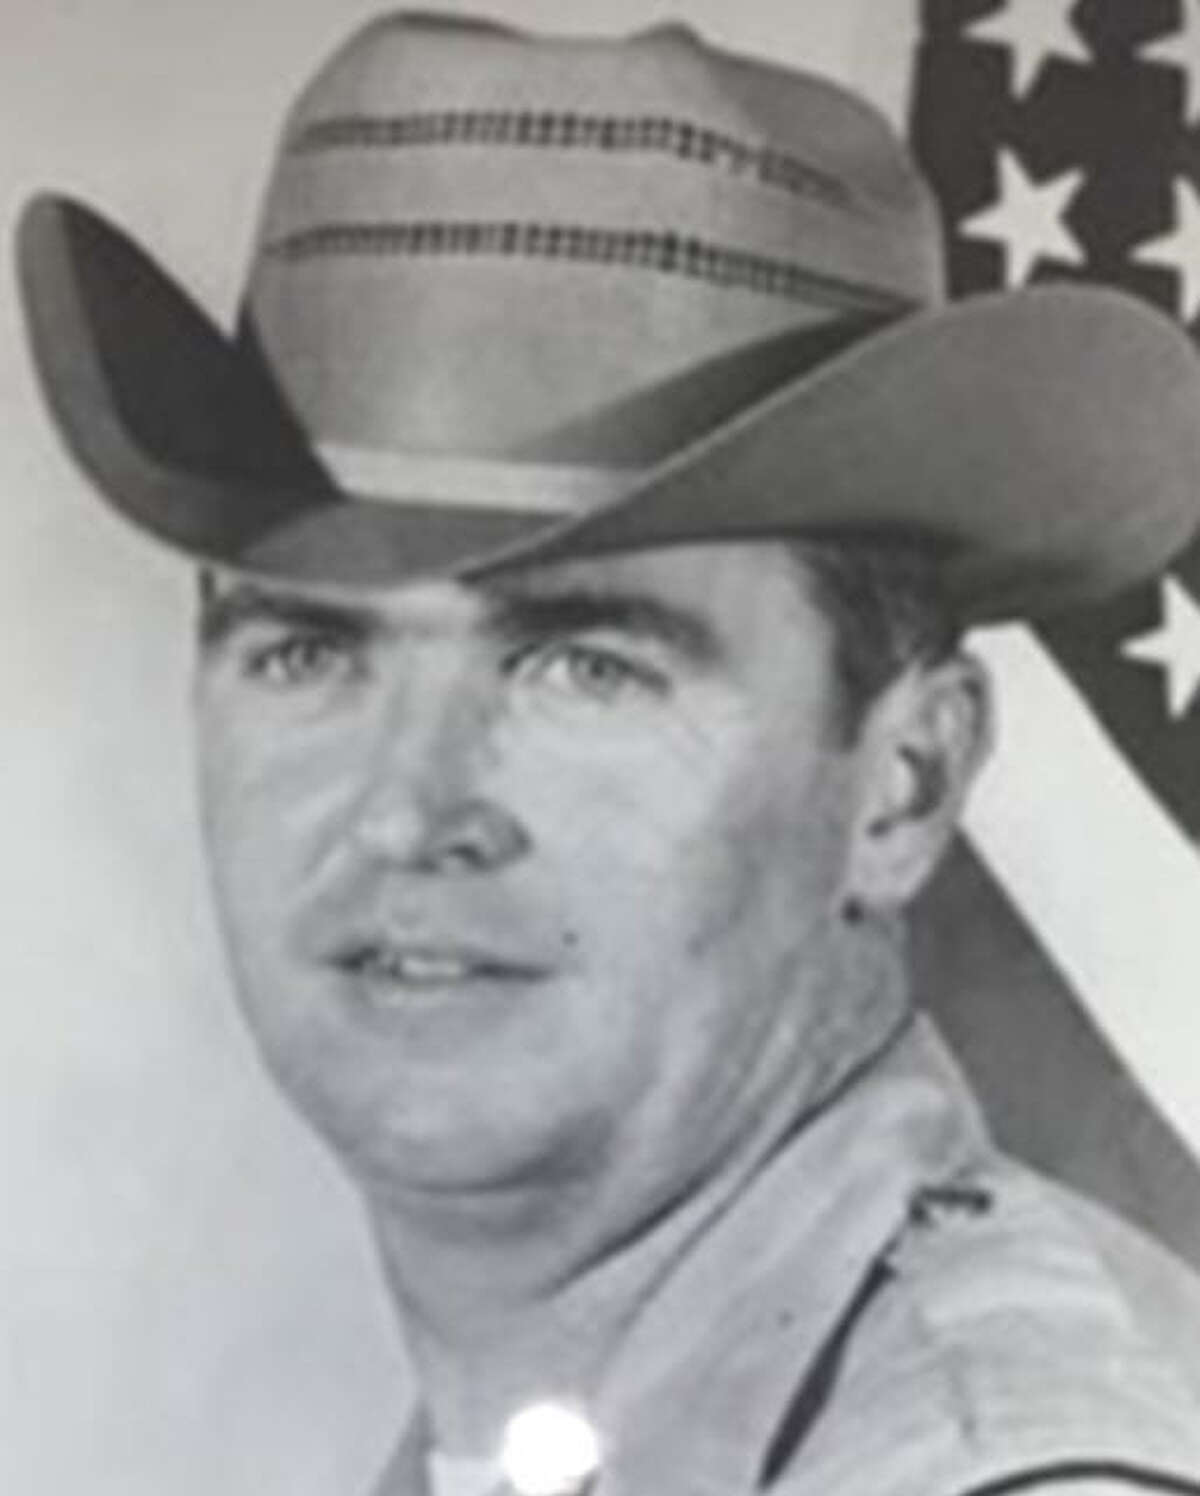 More than 40 years after his death, a man in Alabama has been arrested in the murder of Alice police officer Matthew Murphy. Swipe though to see other cold cases from around the state.